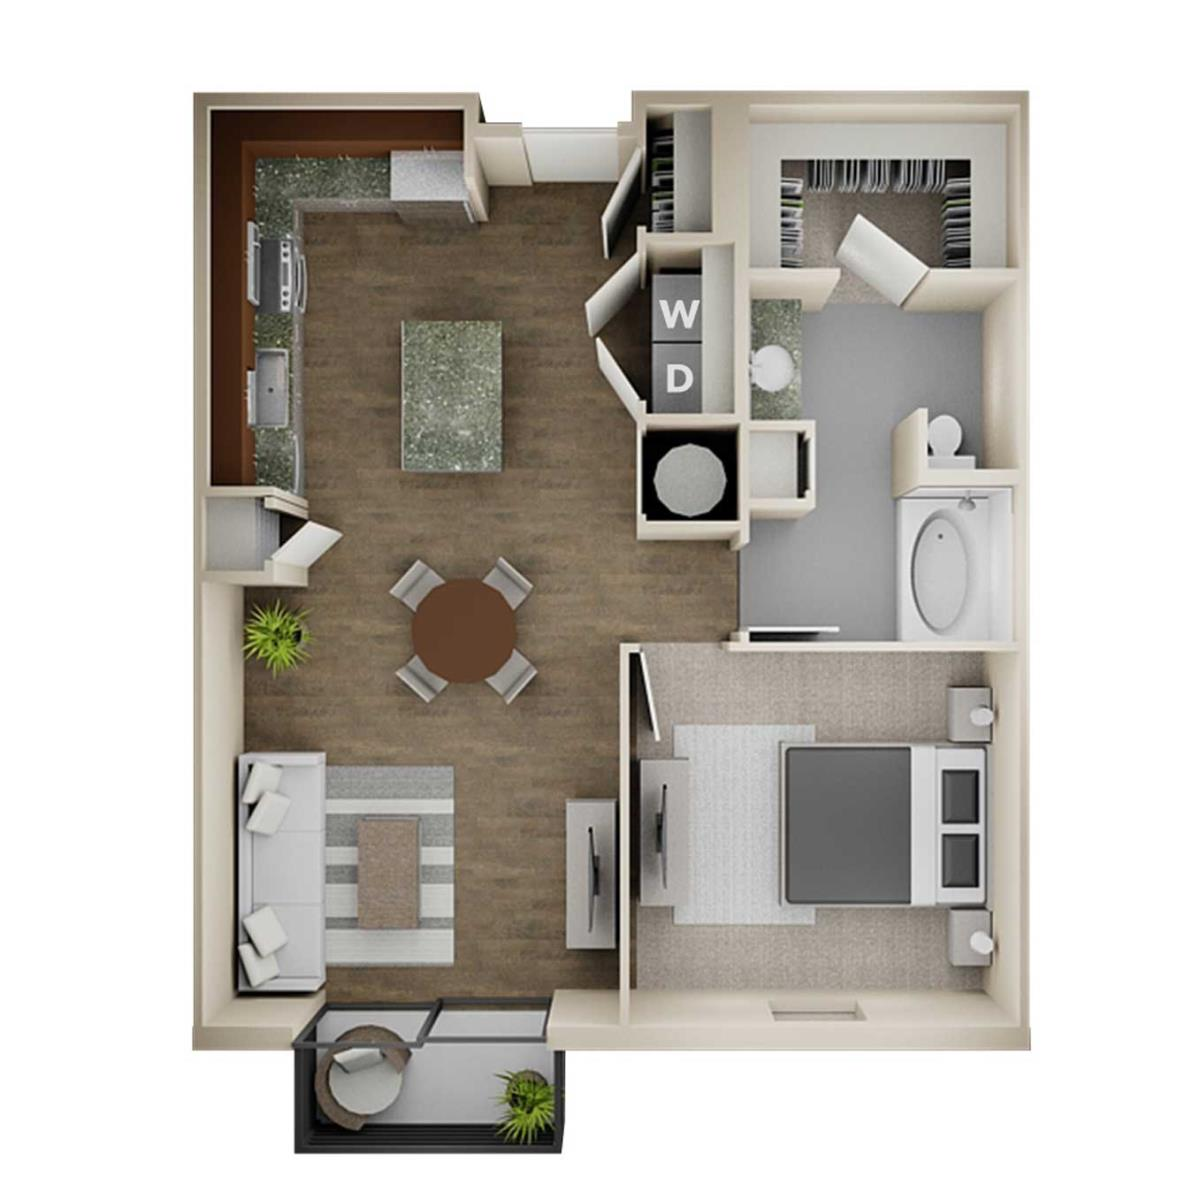 857 sq. ft. 1B Alt 2 floor plan